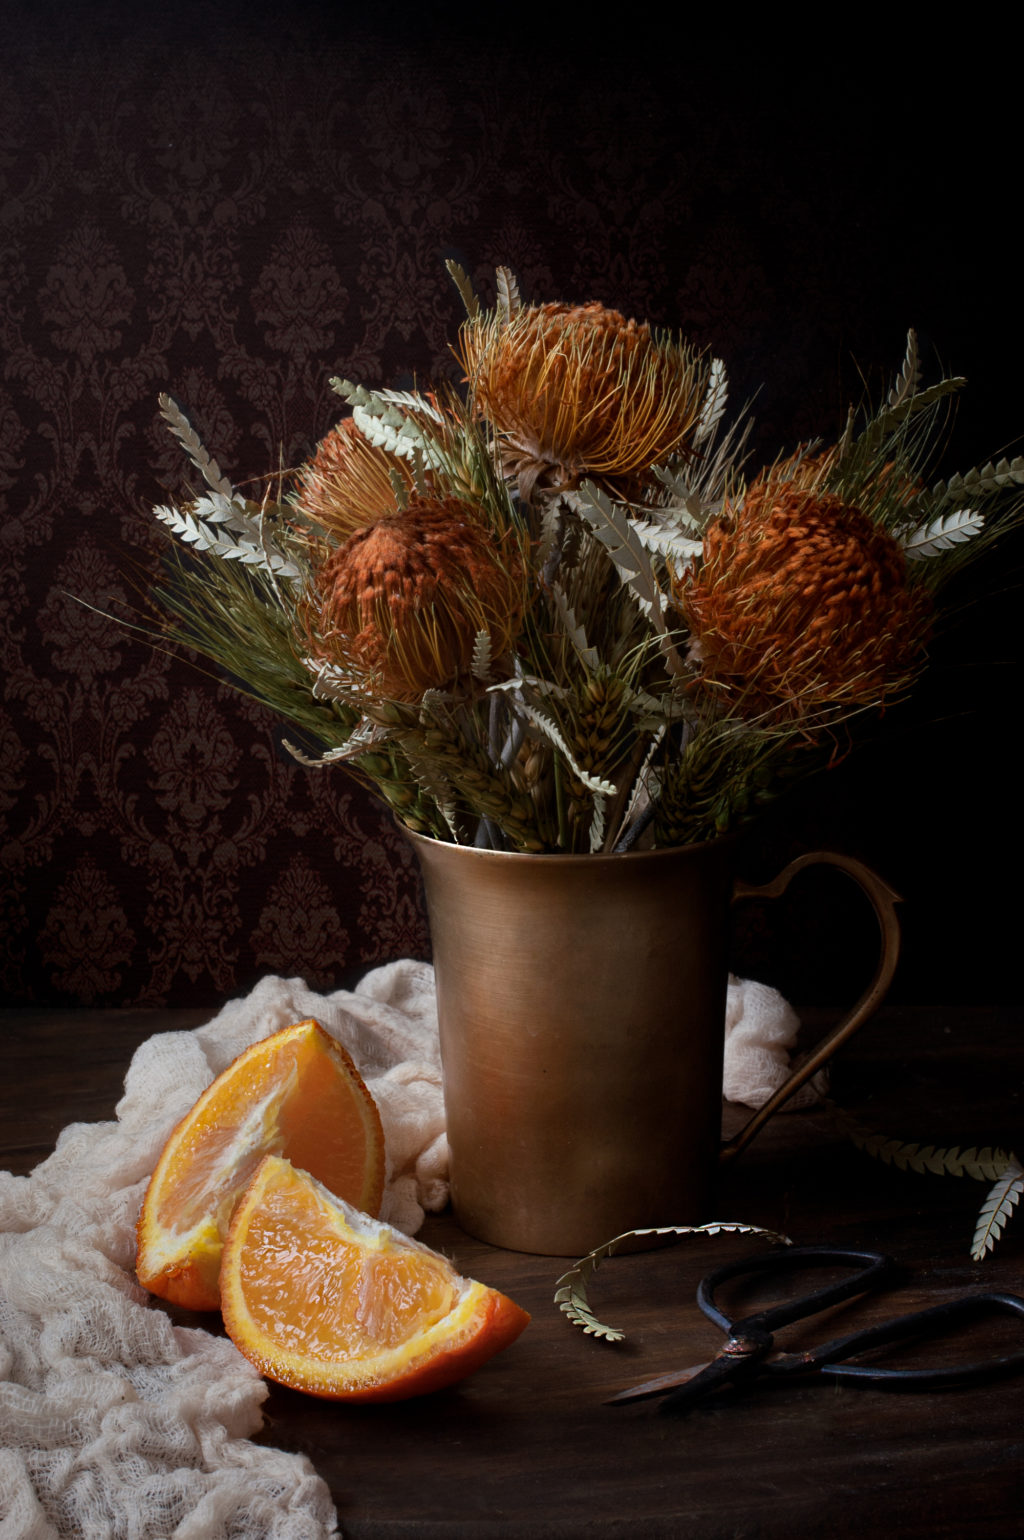 still flowers dried fruit photographs floral arrangement orange pexels brown vase photographer stunning beside light inspire nieves eneida pixabay floranext